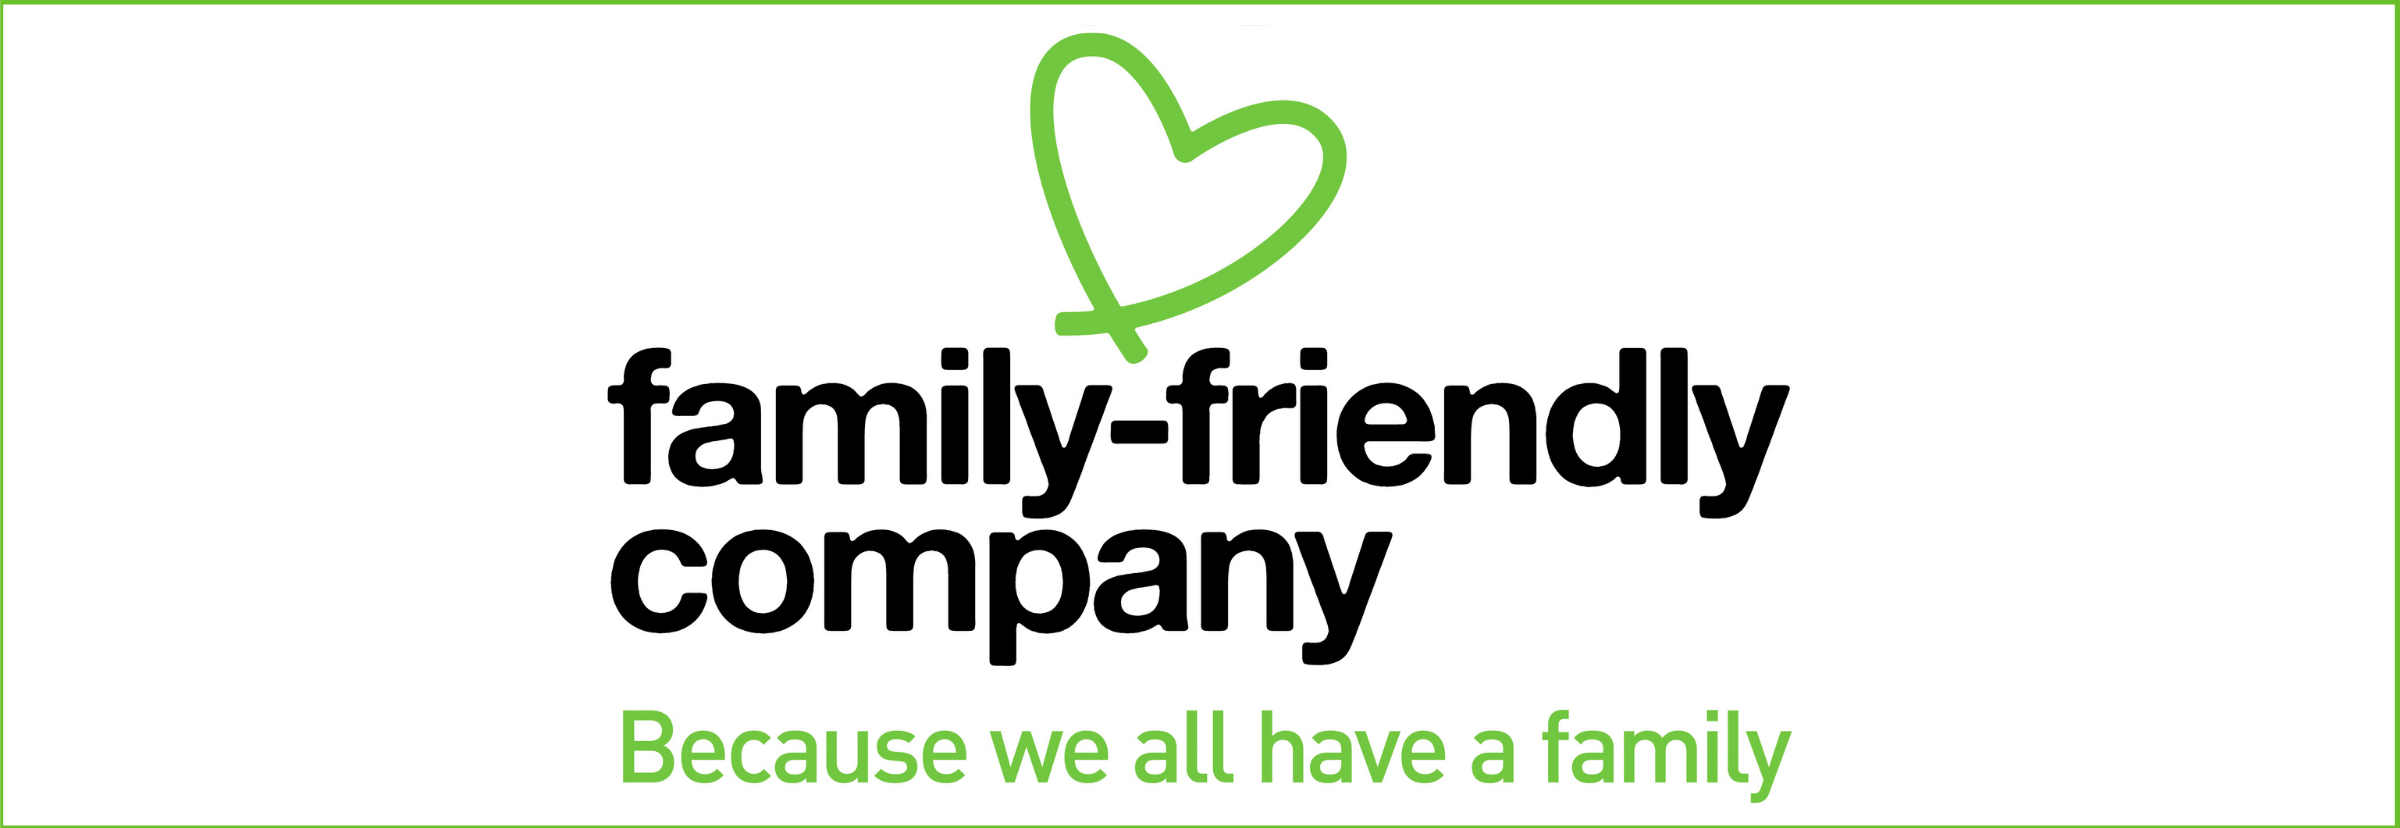 Family friendly company -banneri